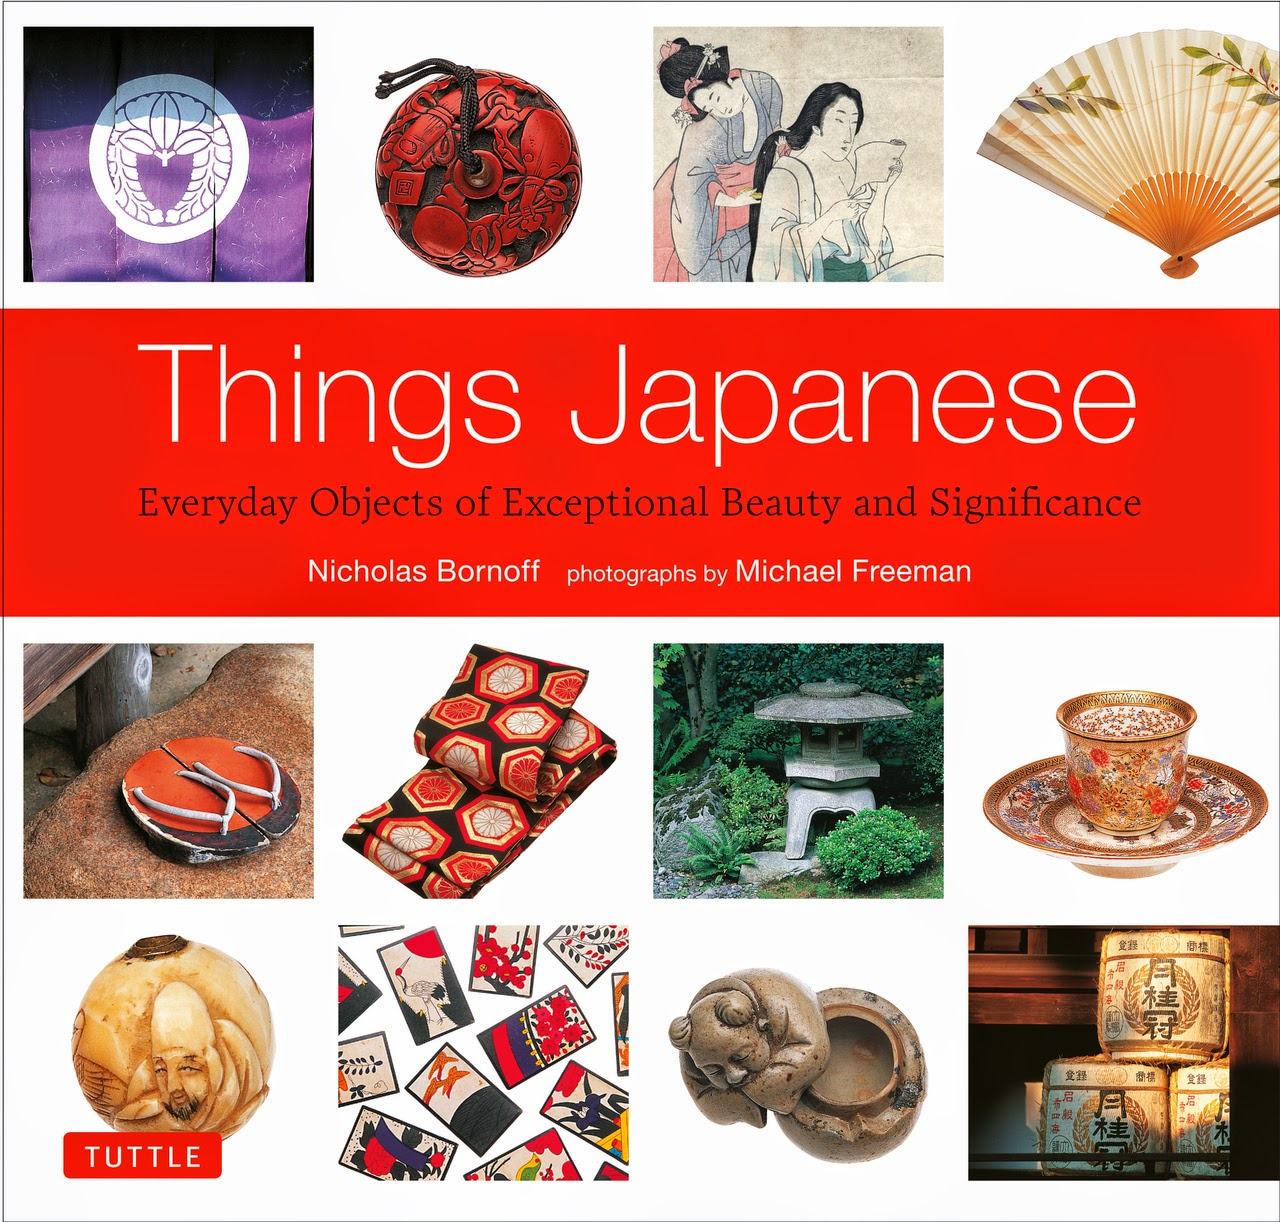 Things Japanese A Book Review And Contest